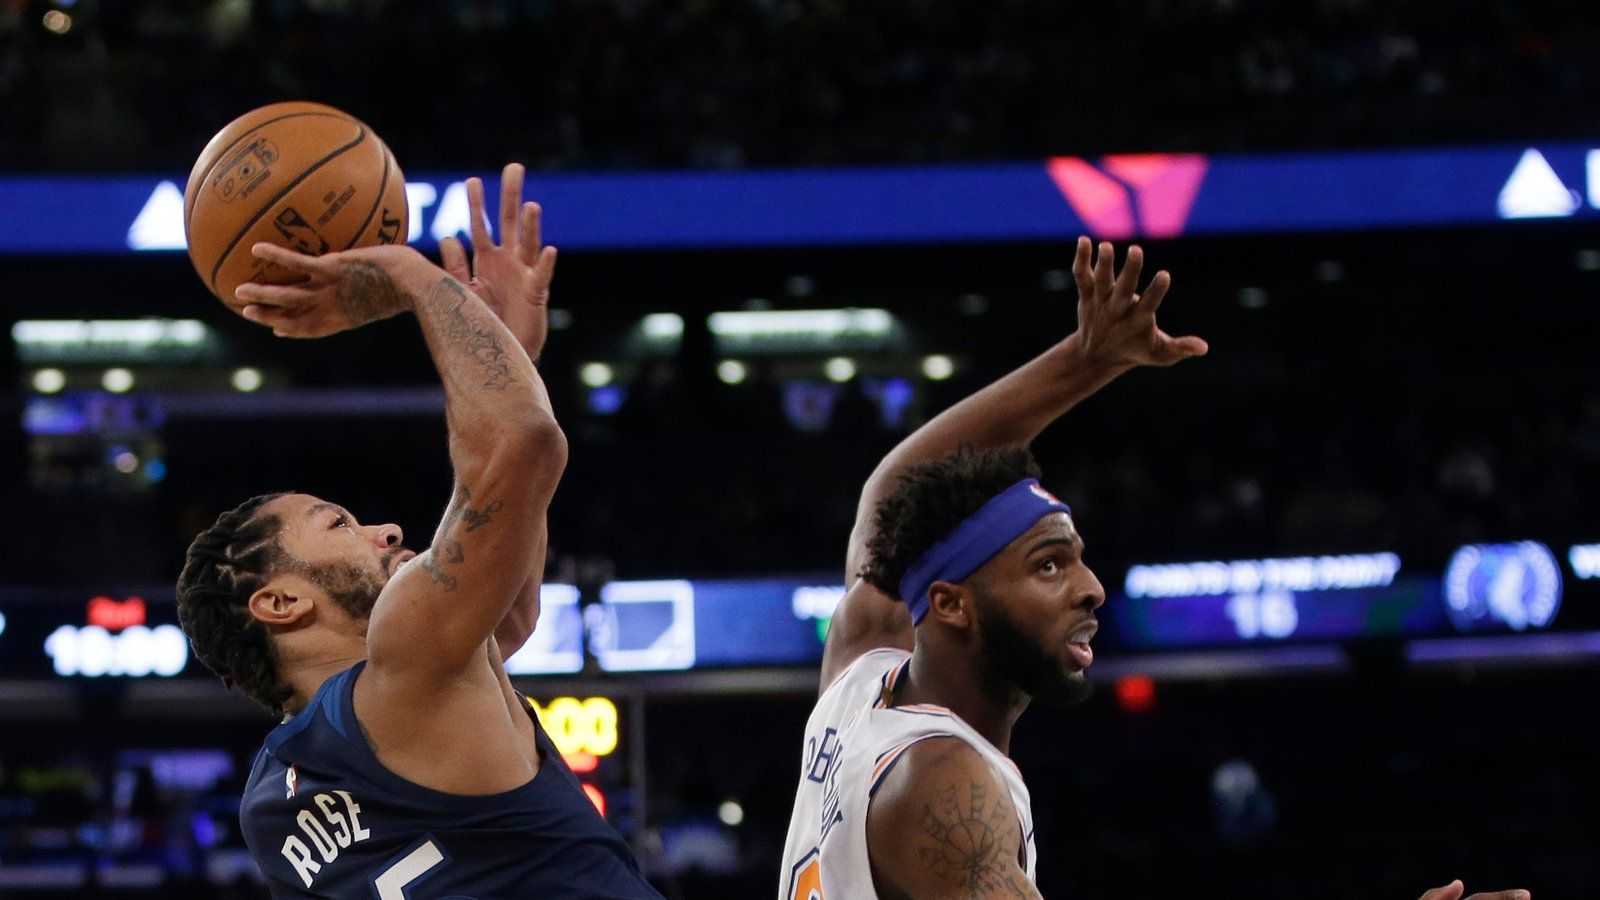 Timberwolves, Without Towns for First Time in 304 Games